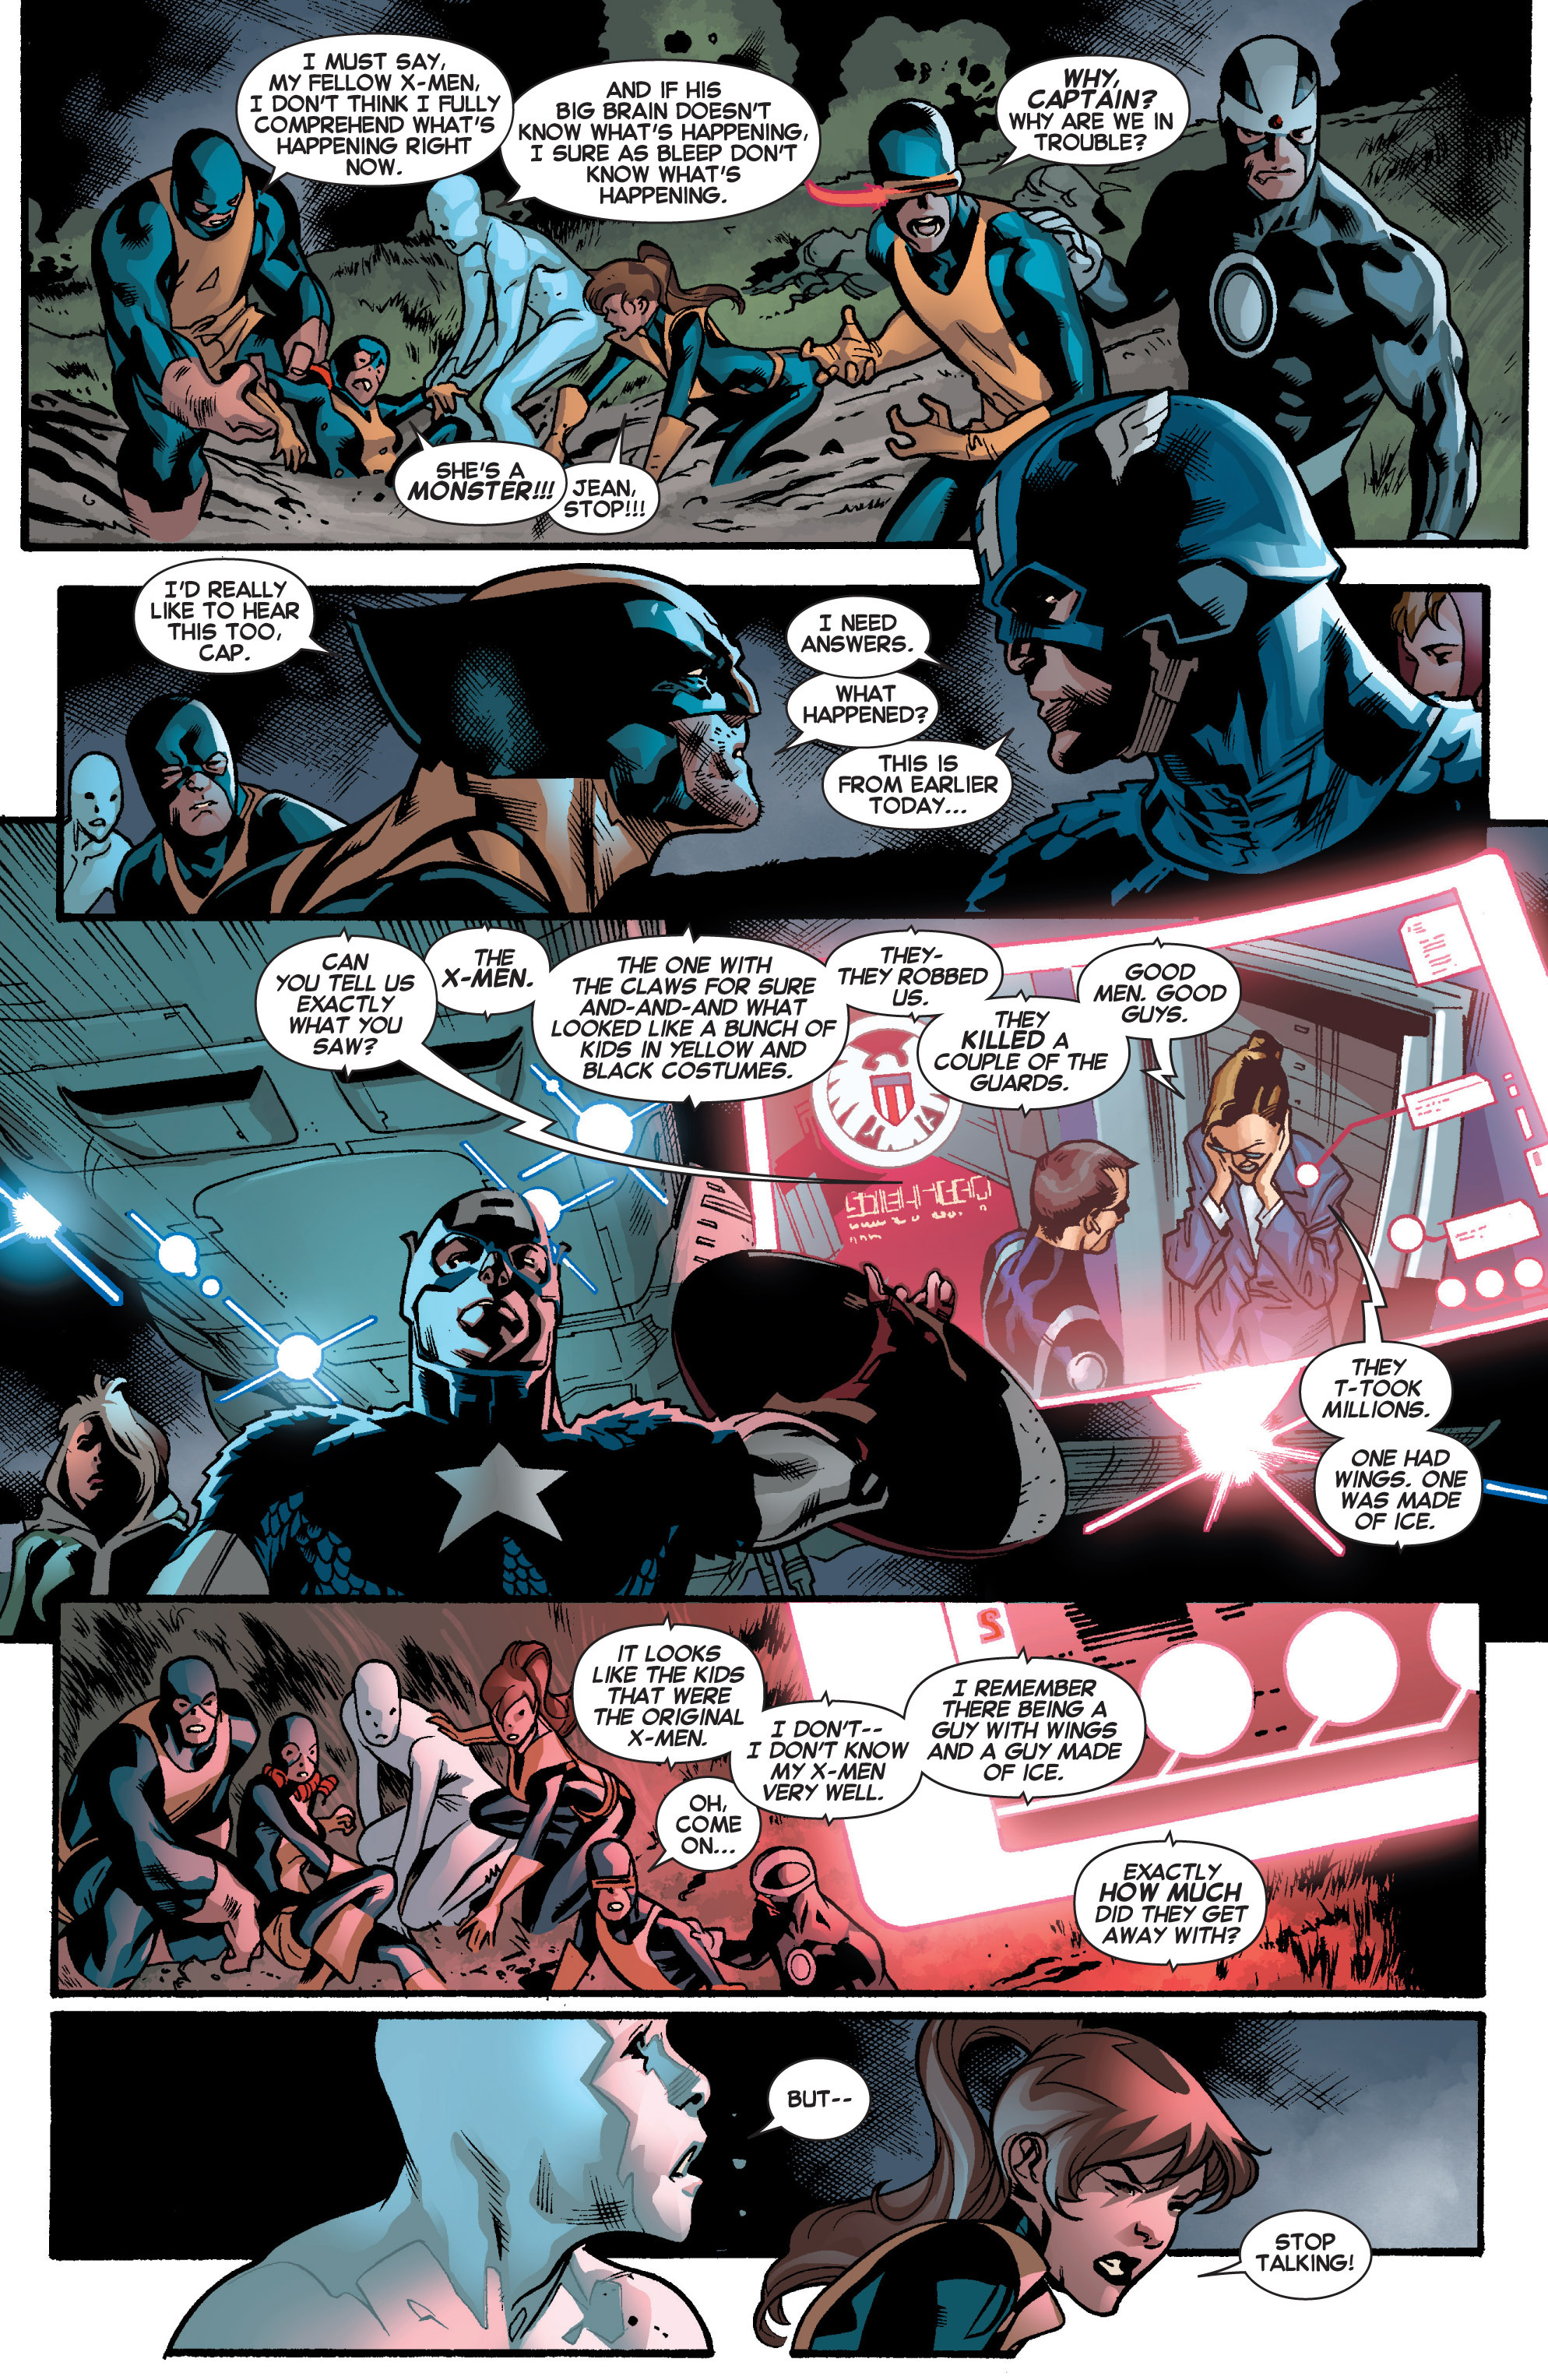 Read online All-New X-Men (2013) comic -  Issue # _Special - Out Of Their Depth - 40